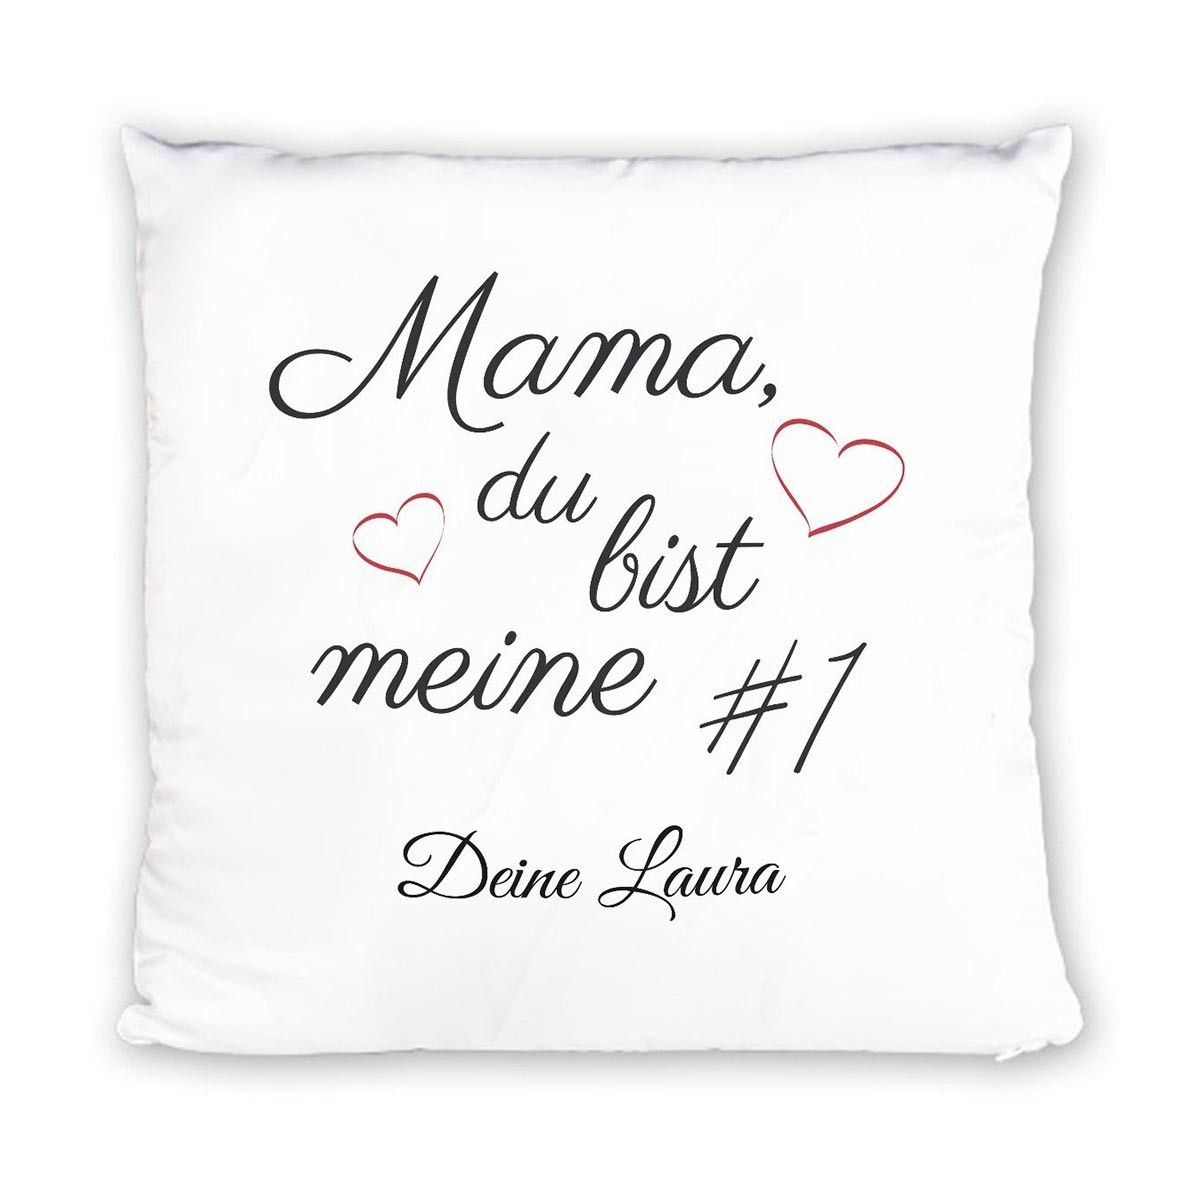 Kissen Mama Du Bist Meine 1 Mit Namen Bed Pillows Pillows